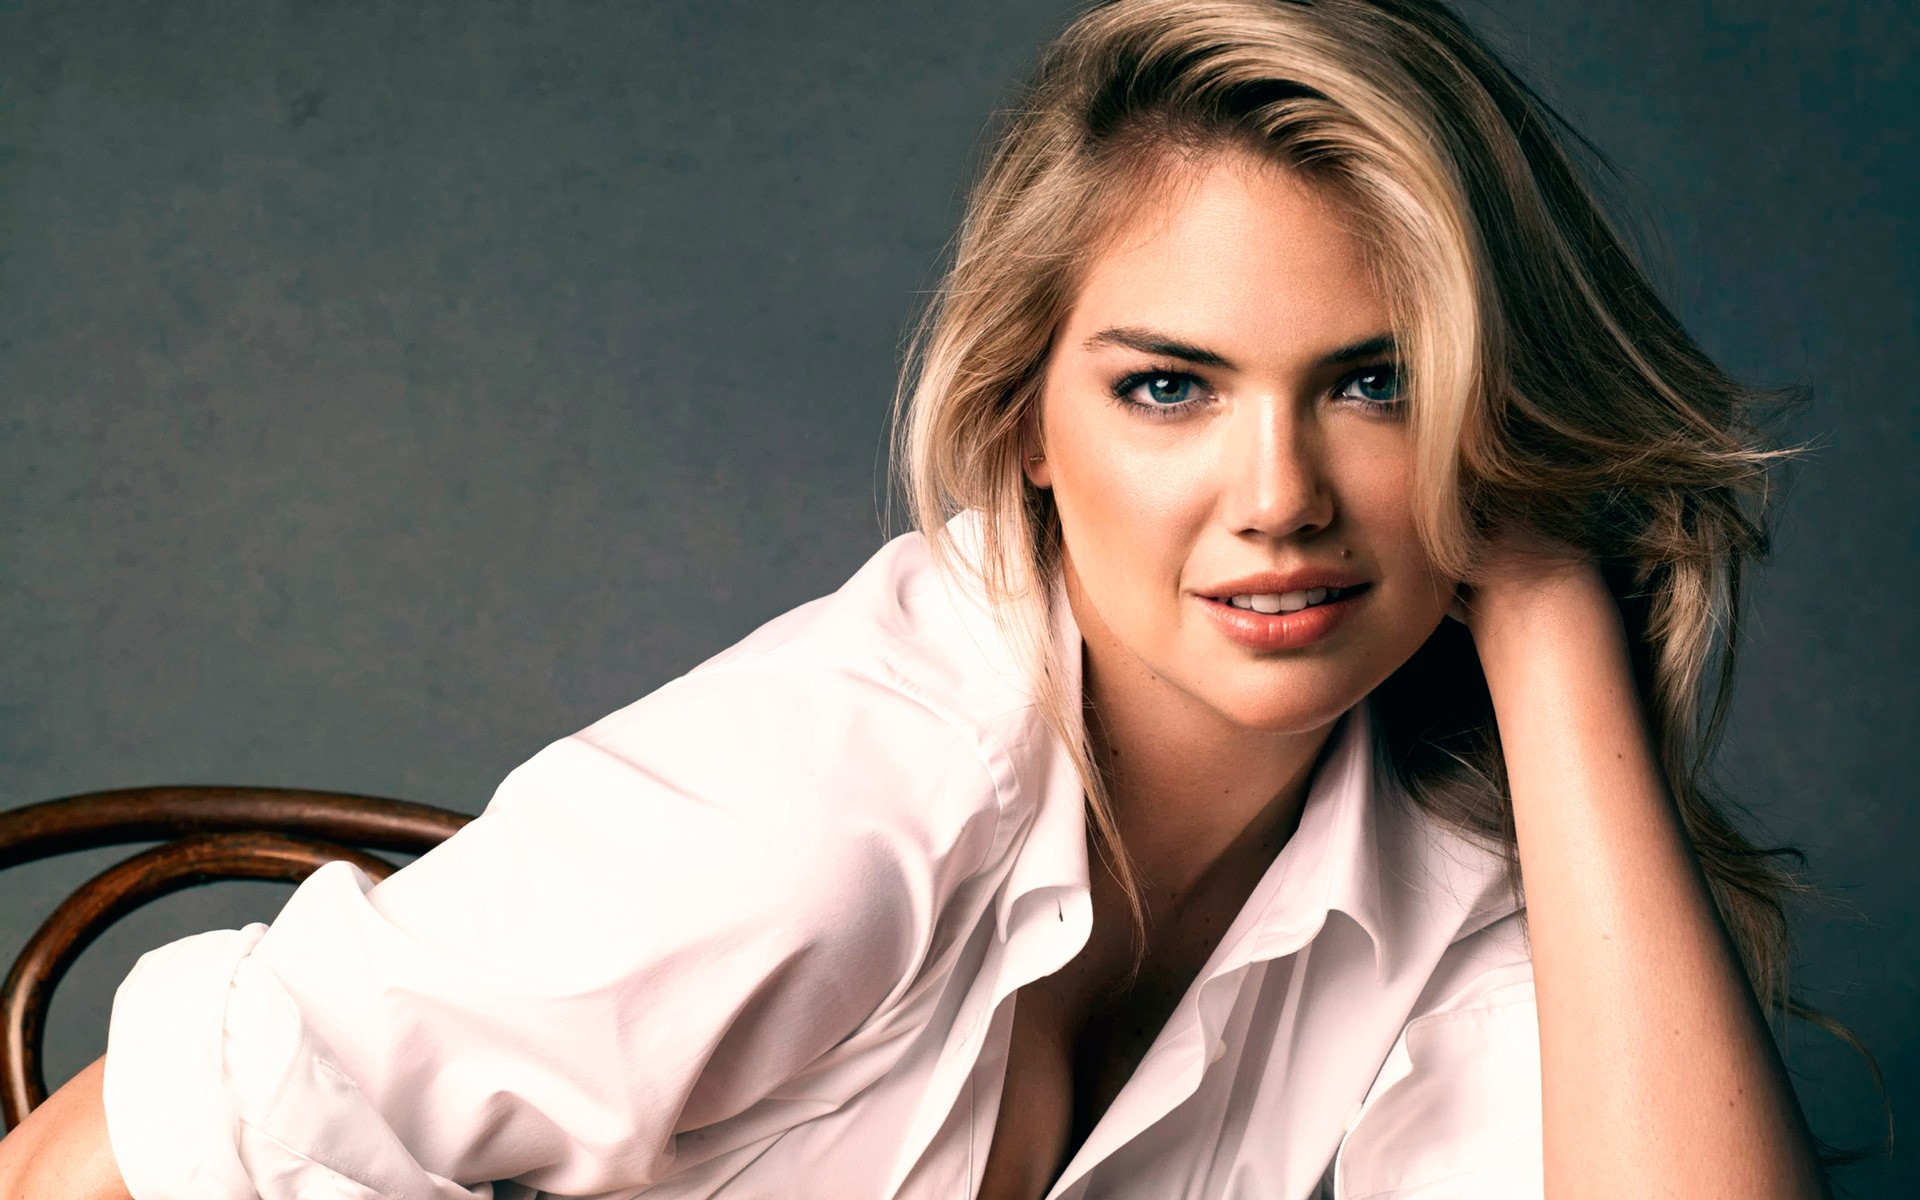 kate upton, hd celebrities, 4k wallpapers, images, backgrounds